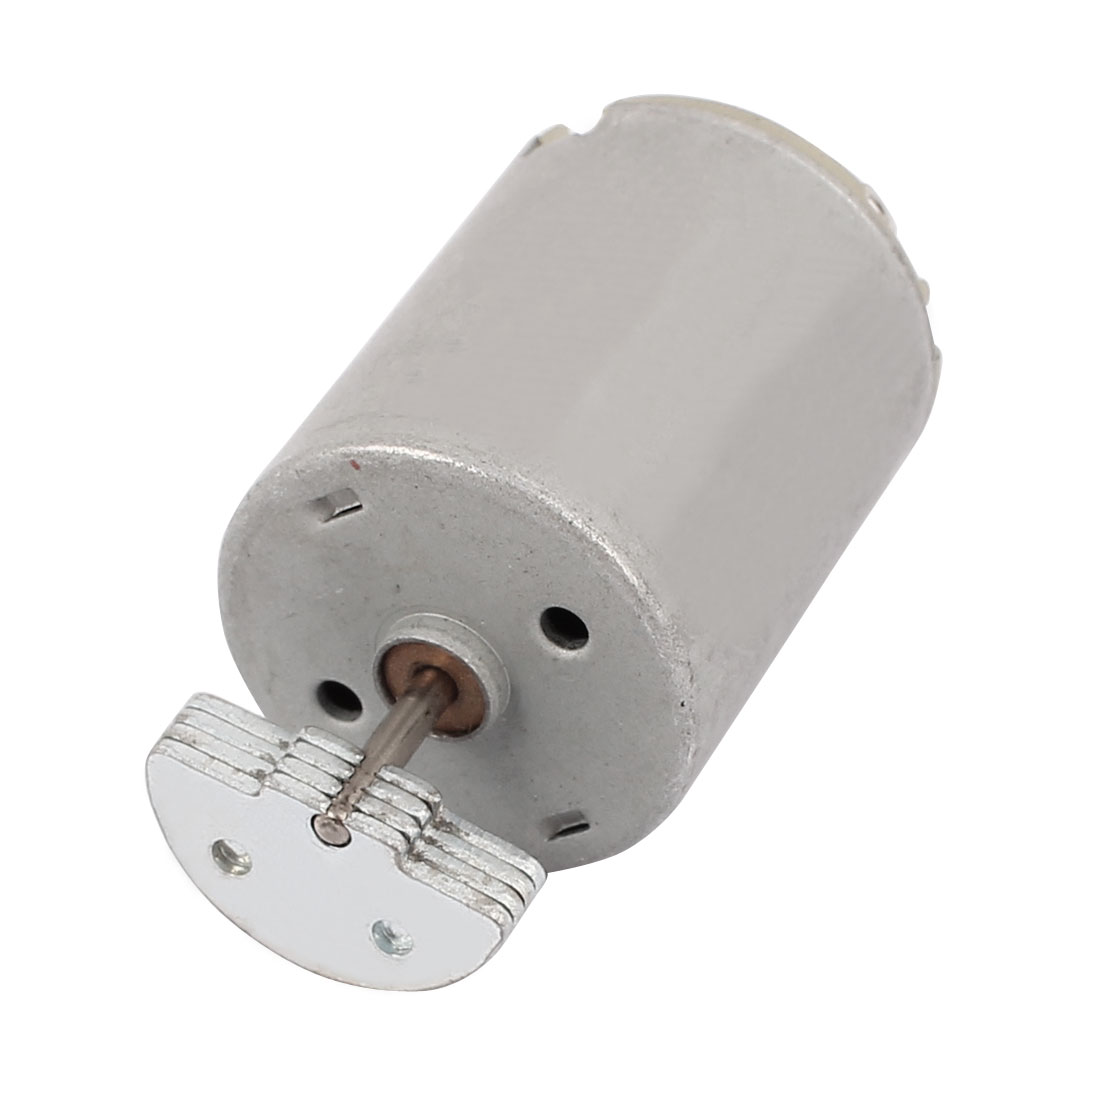 DC 3-9V 13500RPM Large Torque Micro Vibration DC Motor for Electric Massage